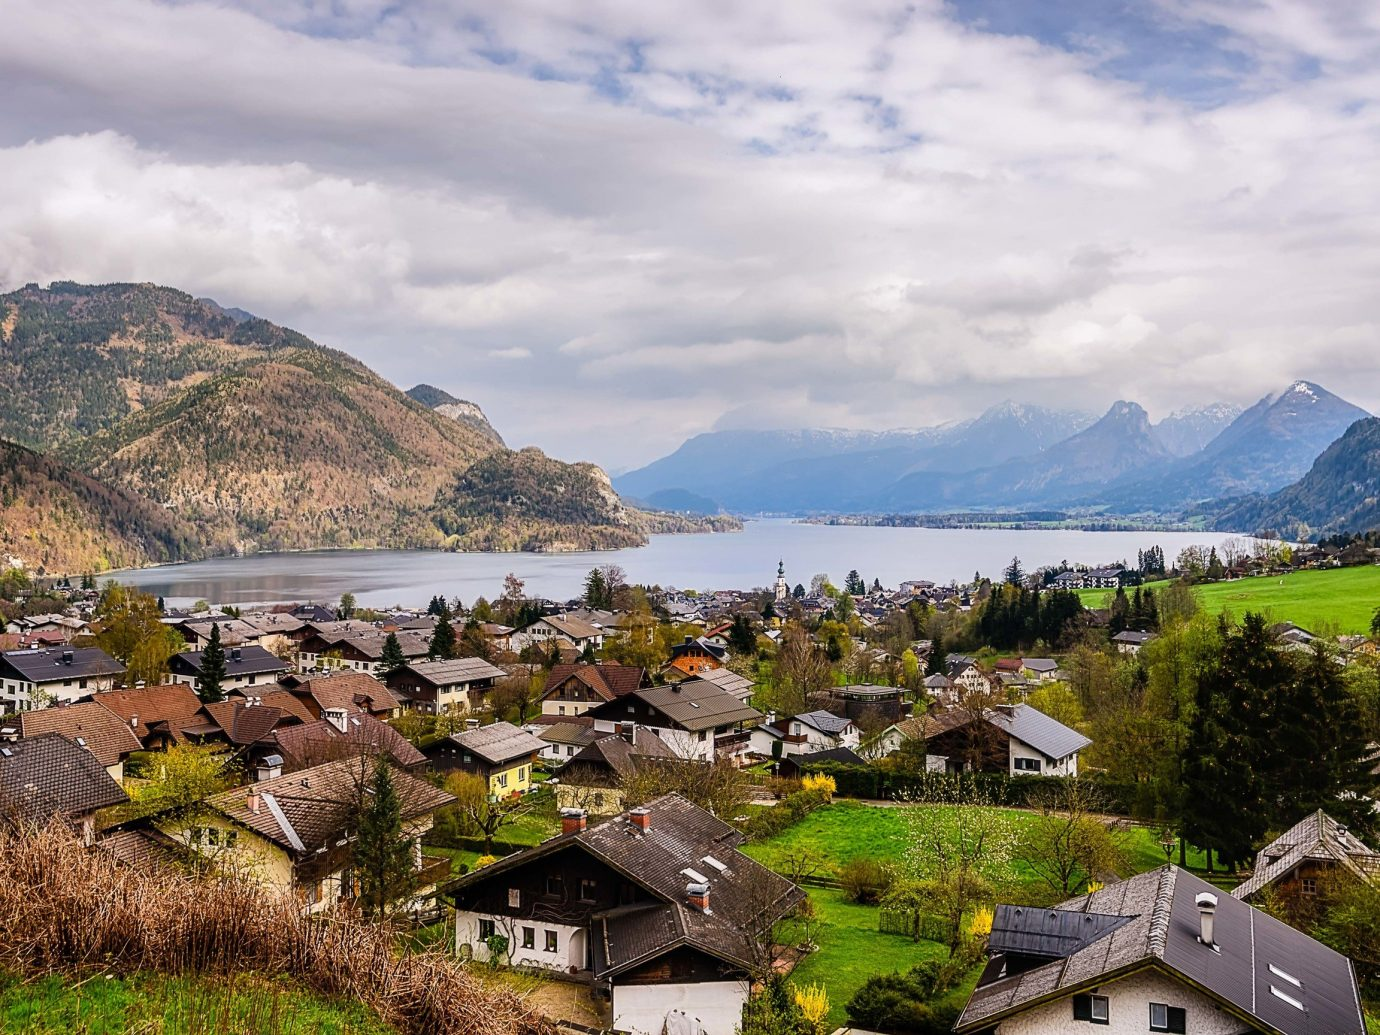 Lakes + Rivers Outdoors + Adventure mountain sky grass outdoor mountain village mountainous landforms Nature mountain range mount scenery highland Village Lake fjord alps valley cloud rural area hill station bank fell tree water landscape canyon tourism hill glacial landform overlooking beautiful hillside lush